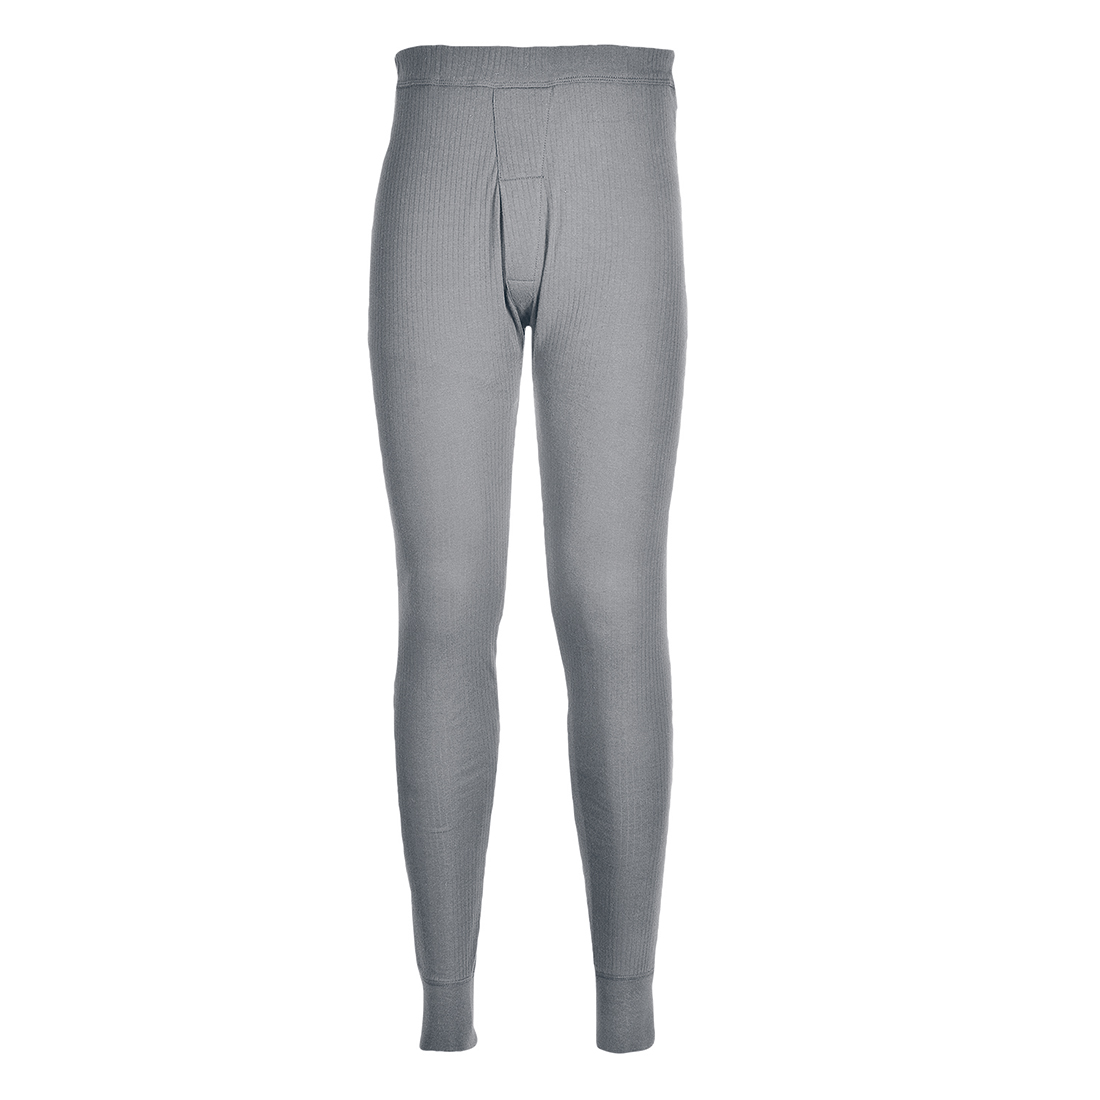 Thermal Trouser Grey Small